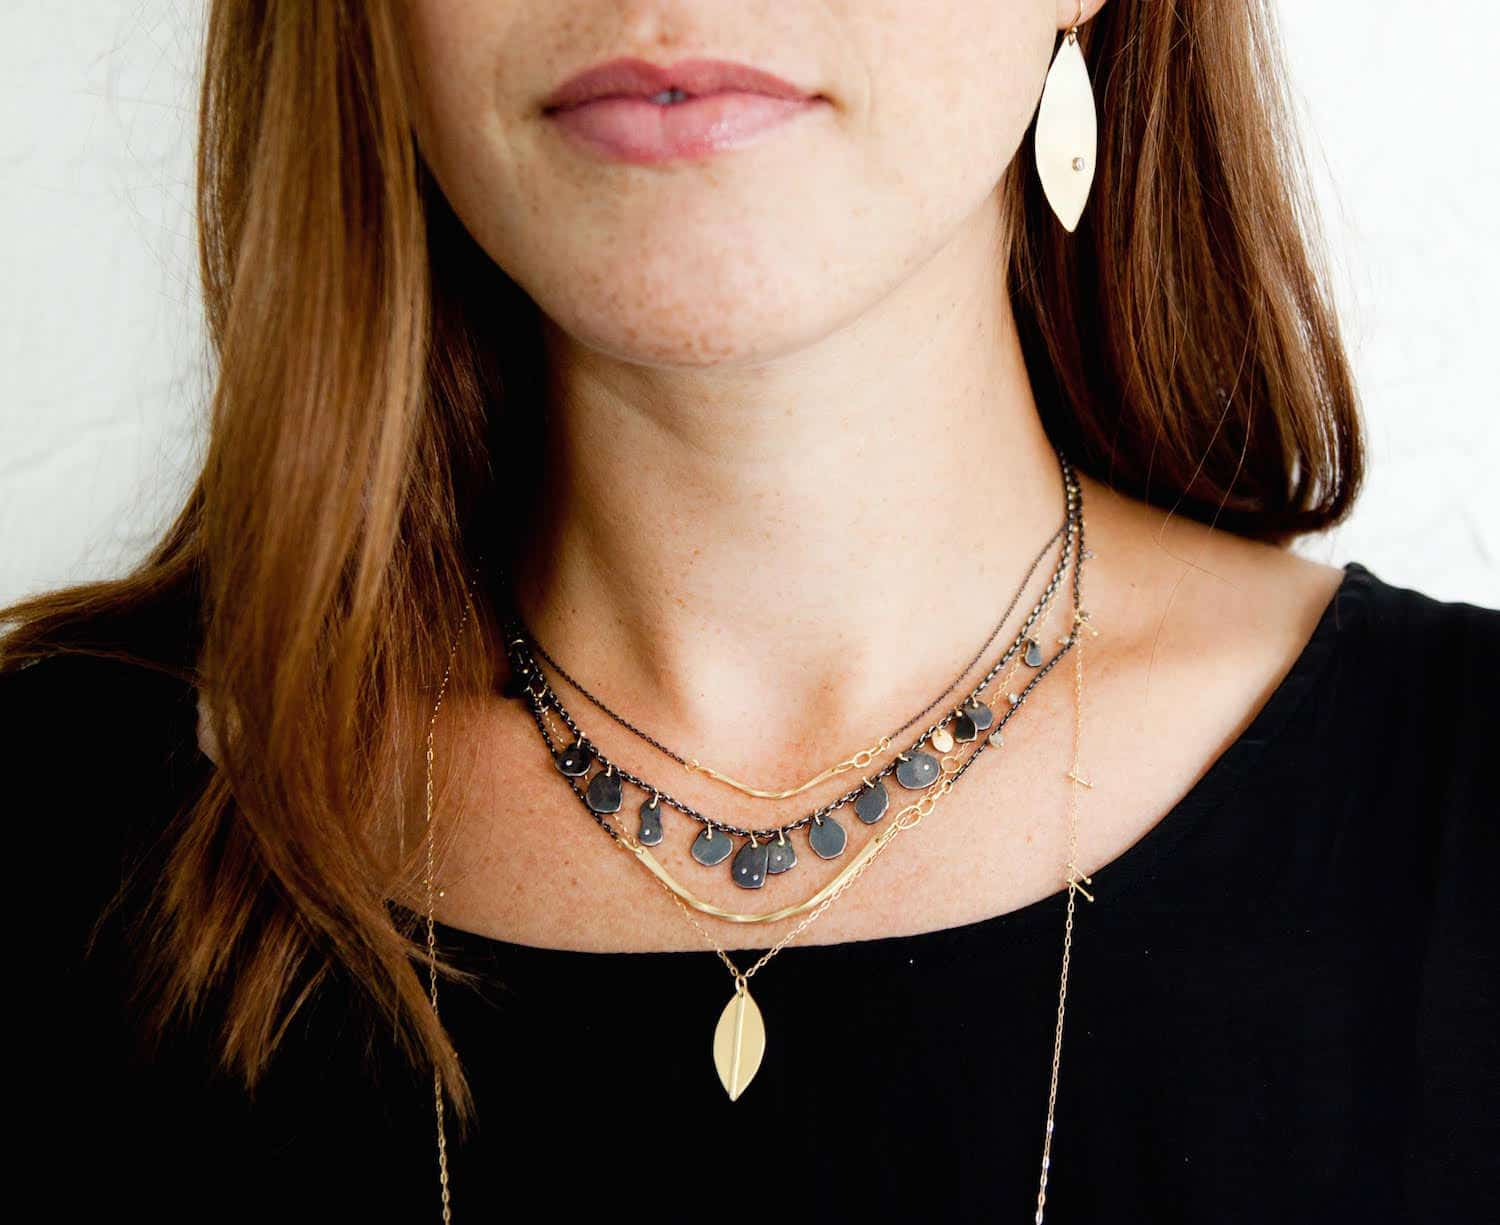 Eugene's NEWTW!ST necklace collections